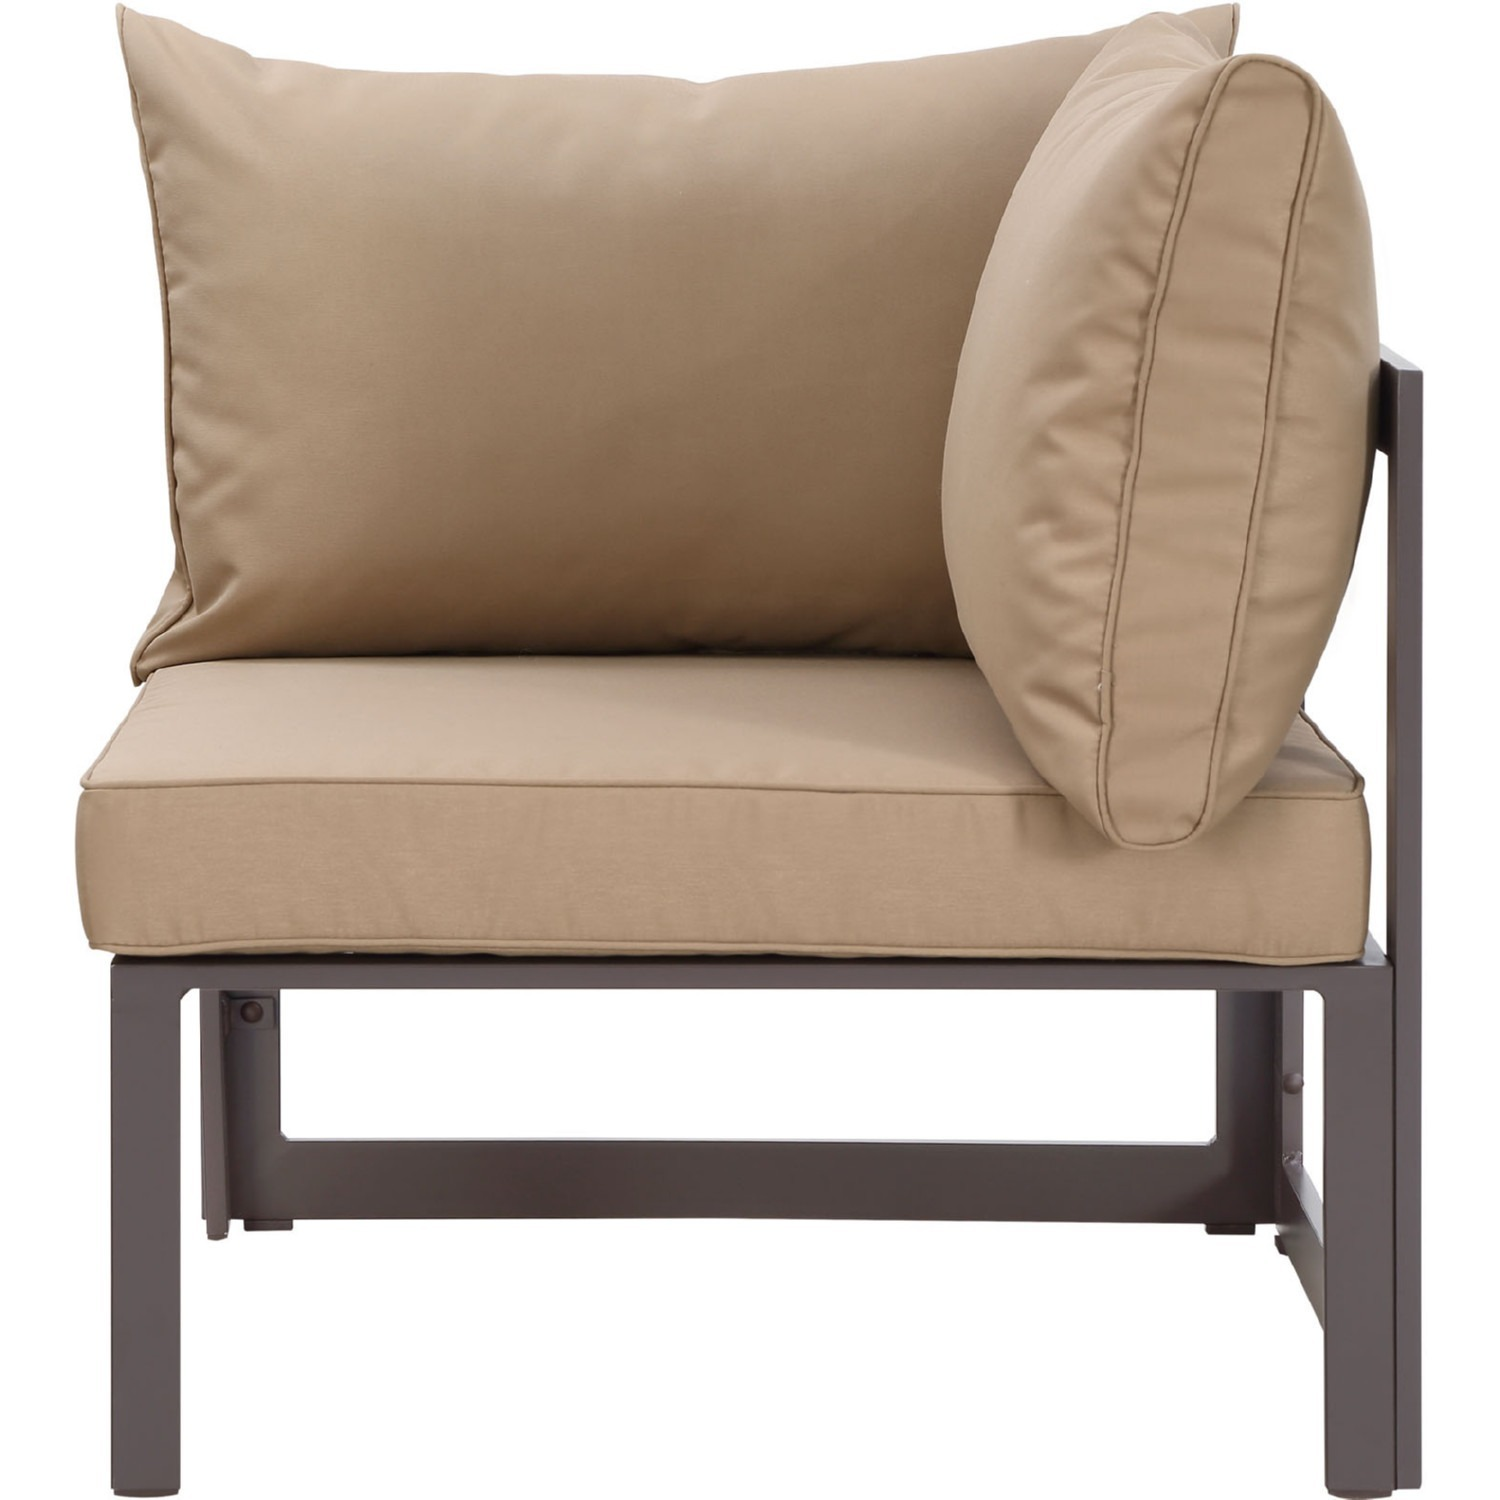 7-Piece Outdoor Sectional In Mocha & Brown Finish - image-4